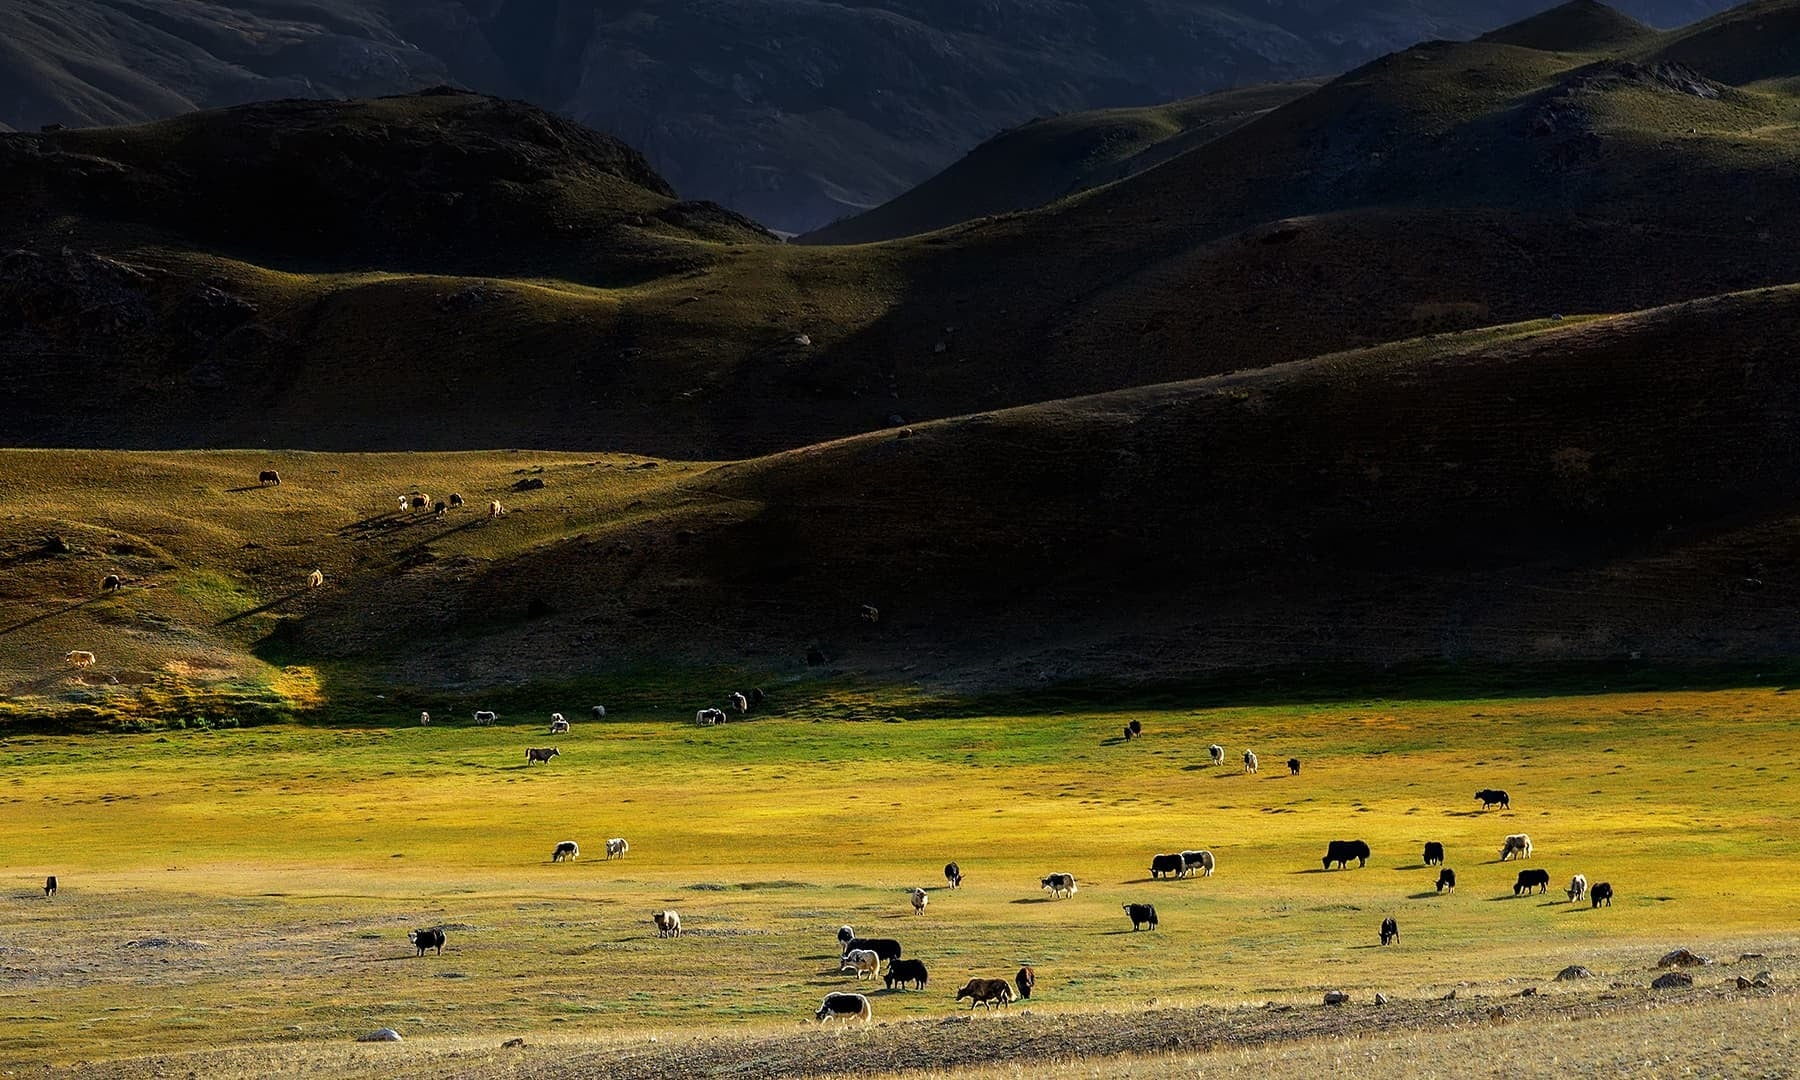 Herd of yaks near the Laila Rabat campsite. — Photo by author